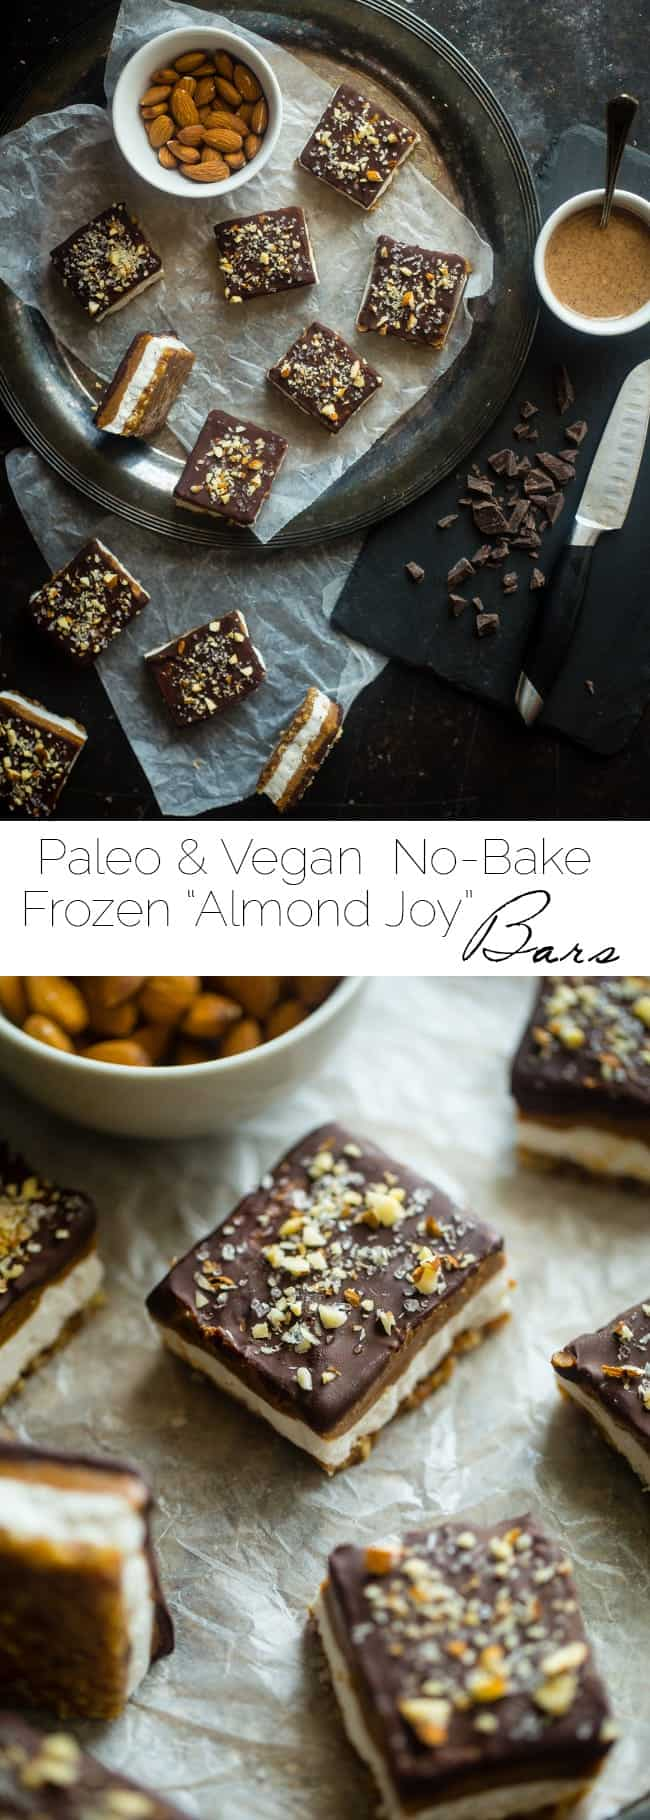 No-Bake Paleo Salted Almond Joy Bars - These salty-sweet, SUPER easy, no-bake bars taste like a frozen Almond Joy! They're the perfect healthy summer treat that's paleo and vegan friendly! | Foodfaithfitness.com | @FoodFaithFit